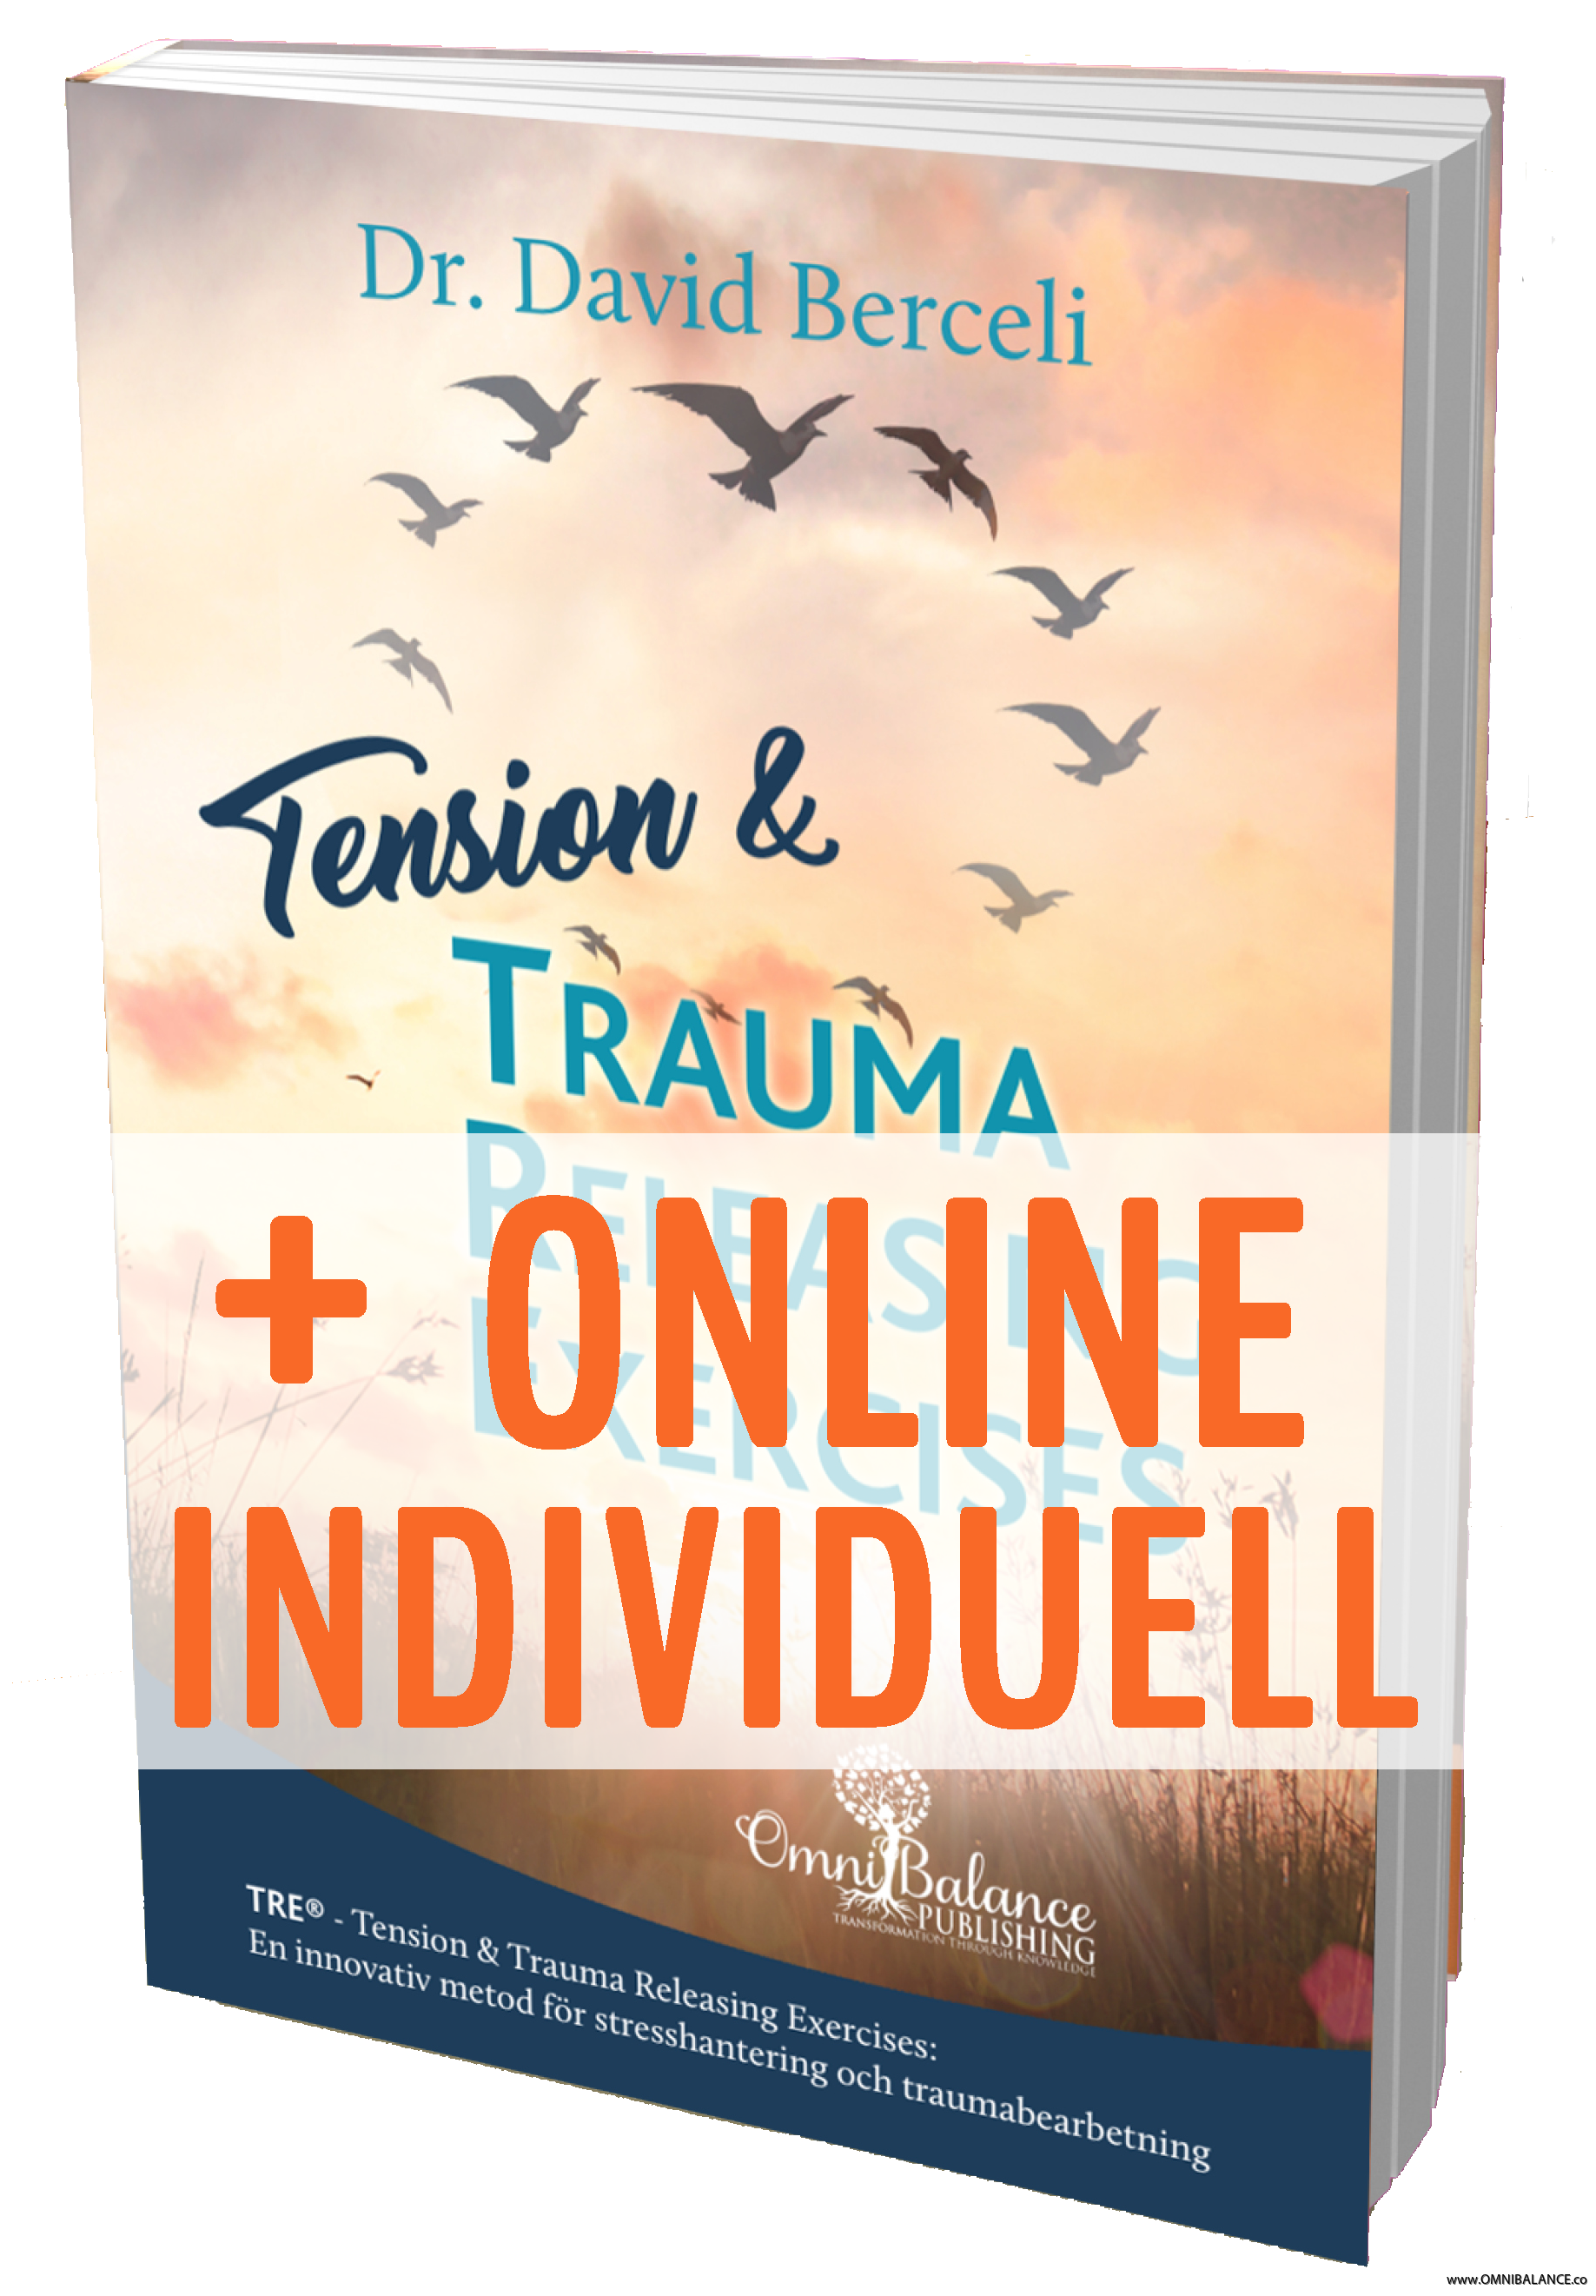 TRE bok ONLINE INDIVIDUELL